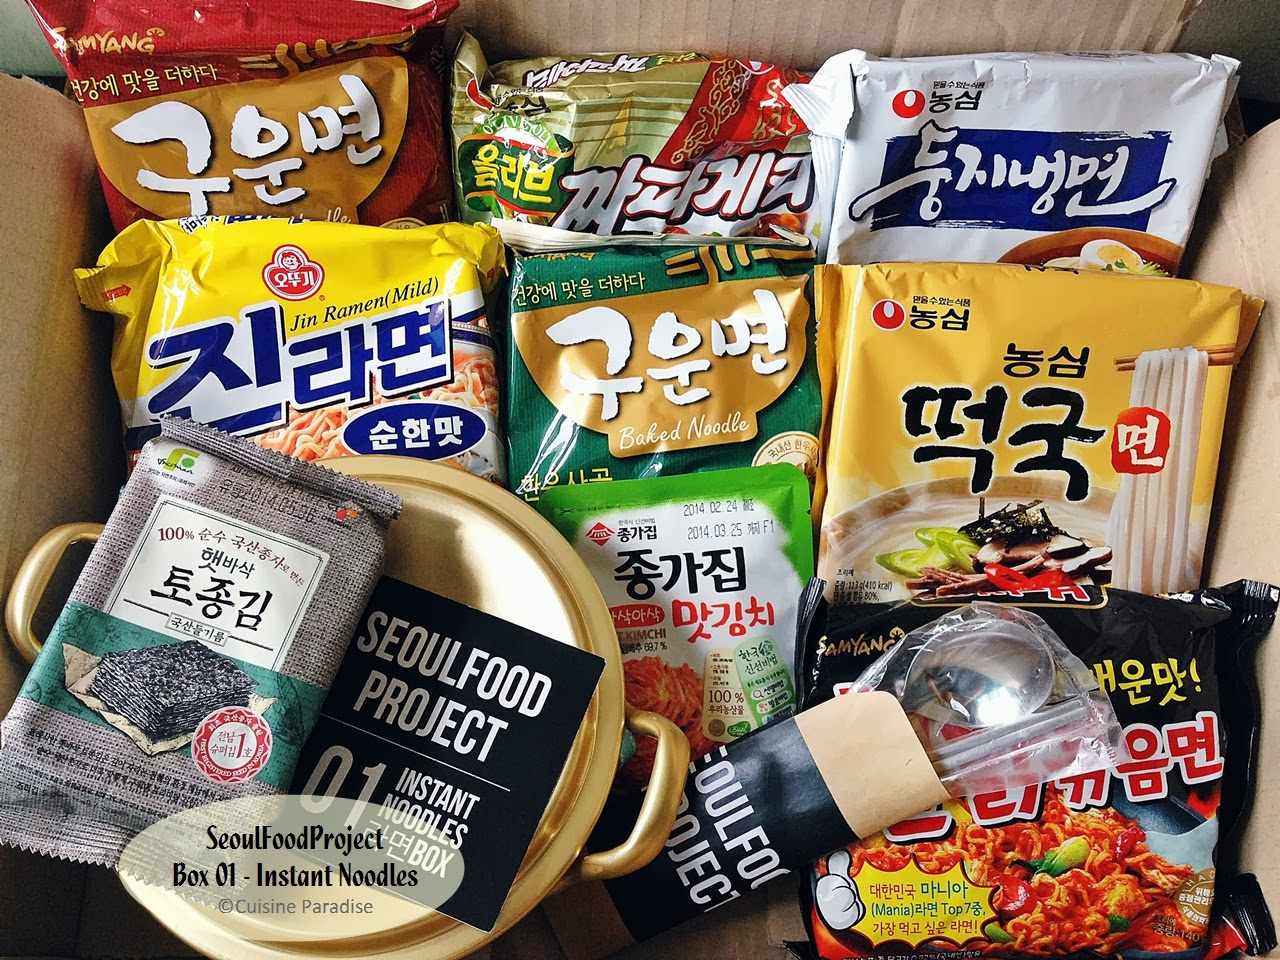 seoulfoodproject - #01 instant noodles box (with recipe + cooking video)